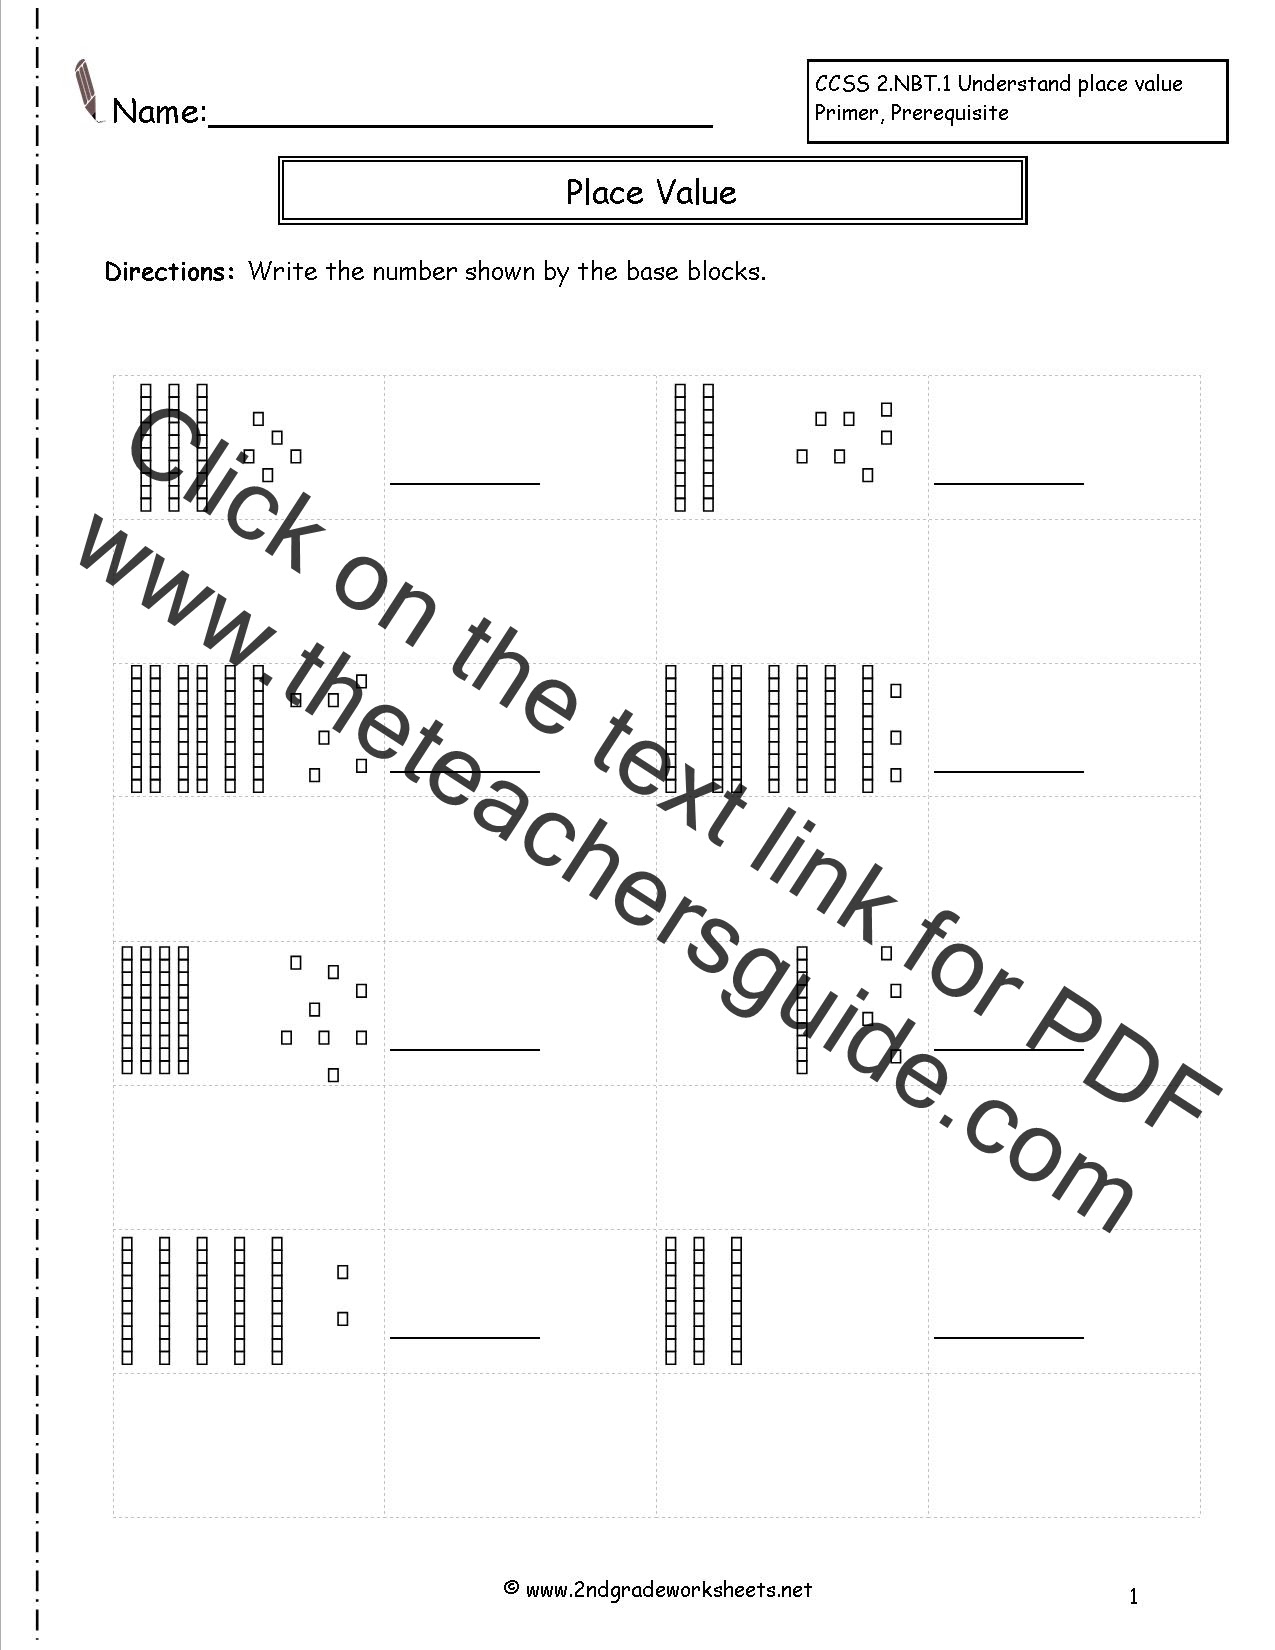 58 MATH WORKSHEETS BASE TEN BLOCKS